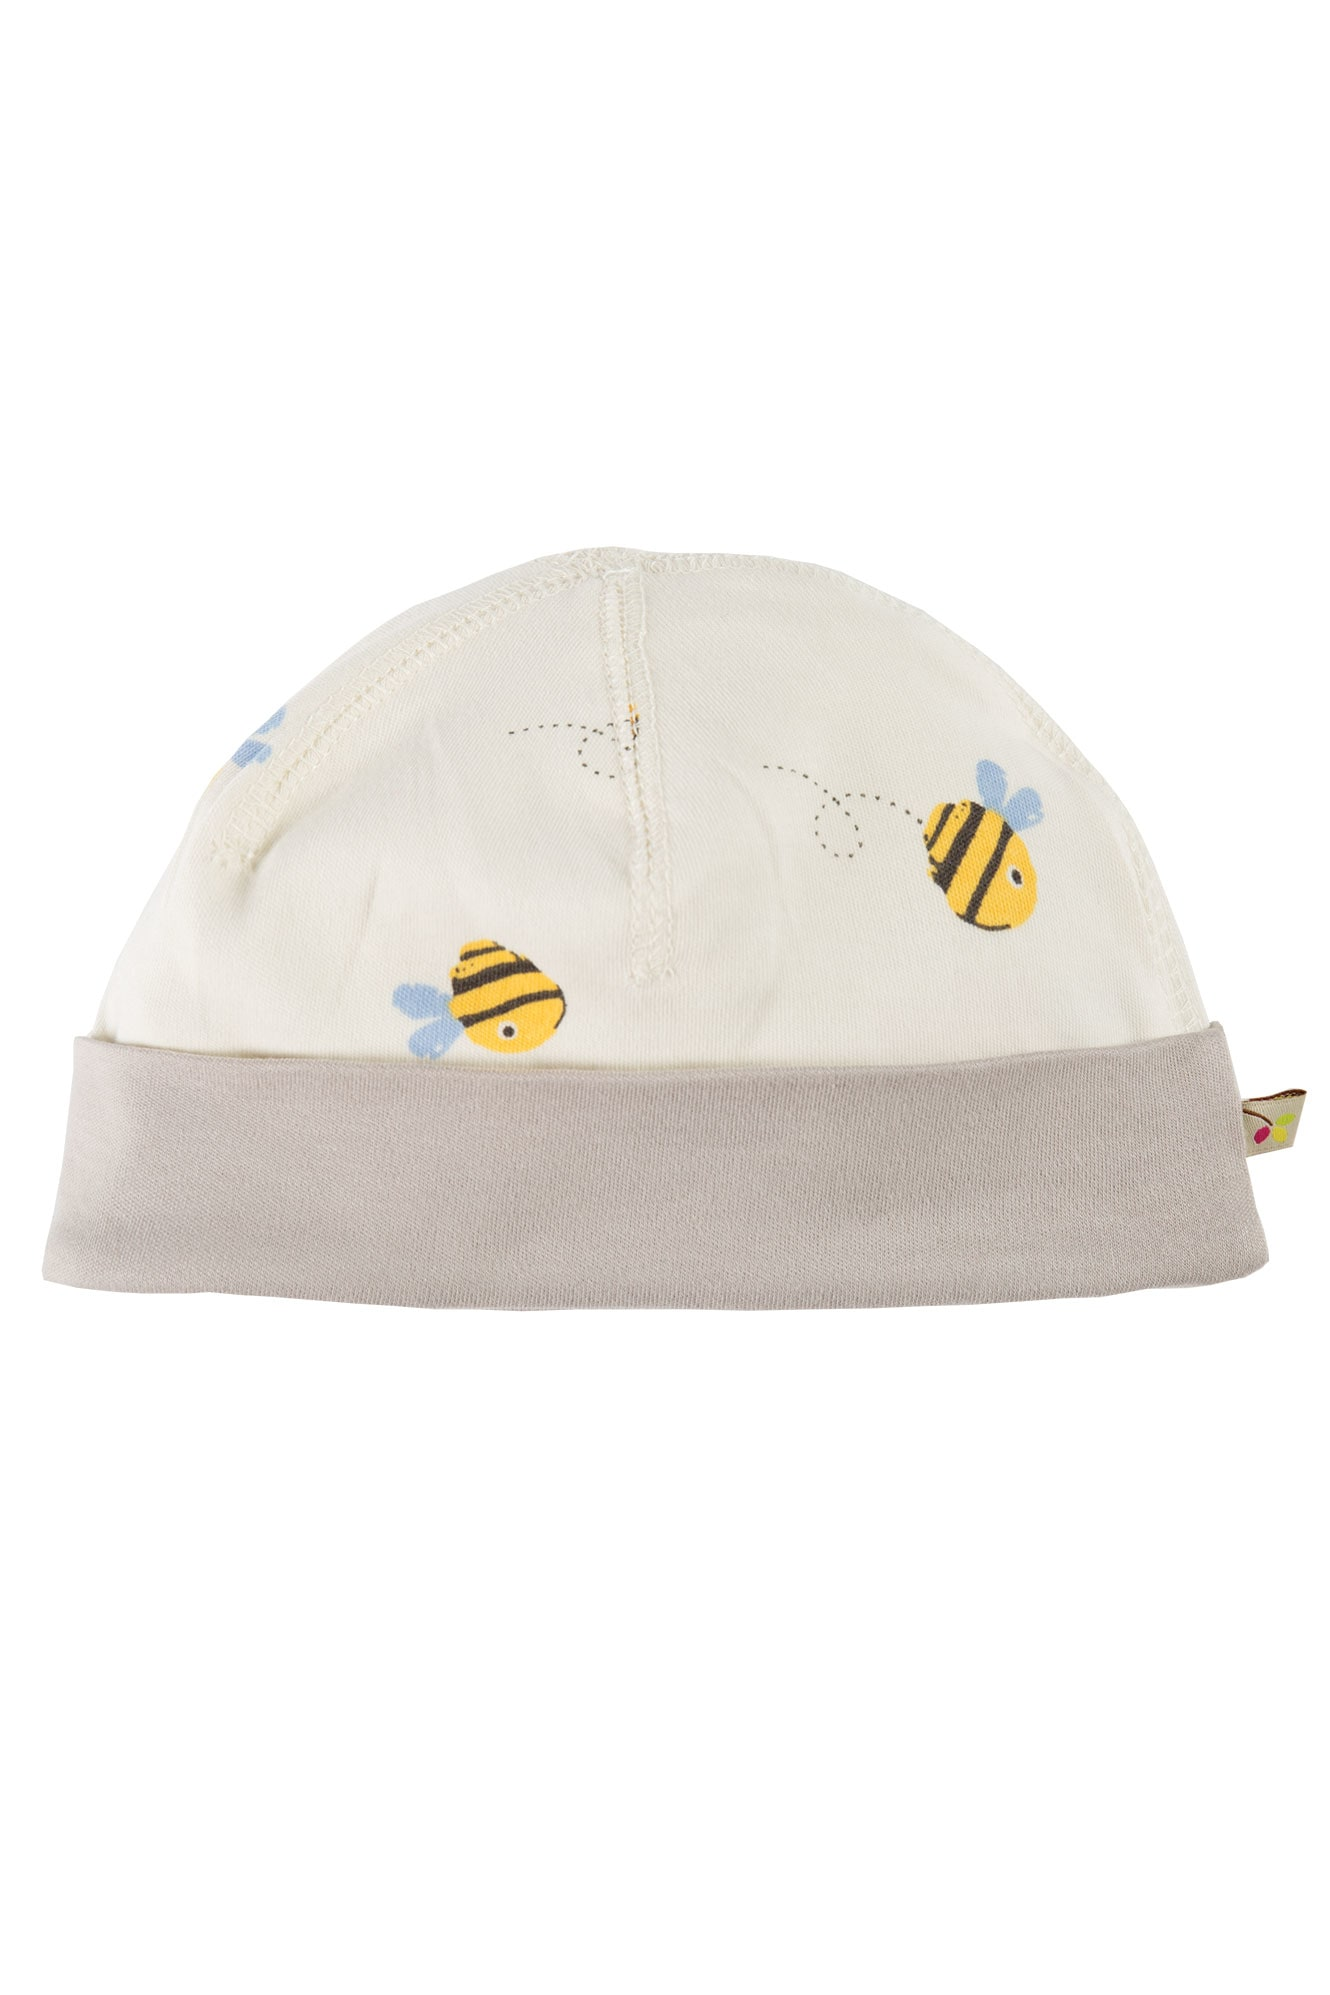 Stockists of Buzzy Bee Hat